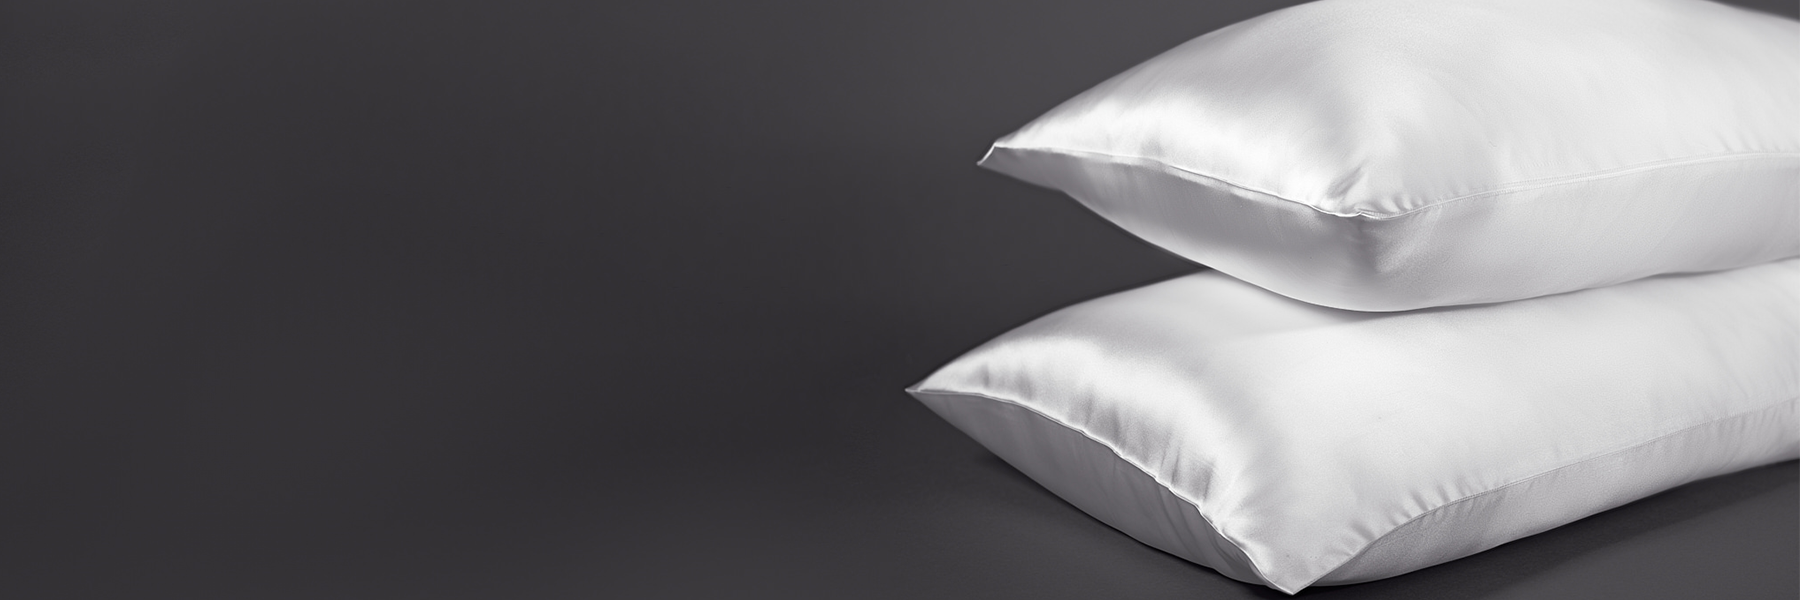 Introducing our new 100% Mulberry Silk pillowcase.